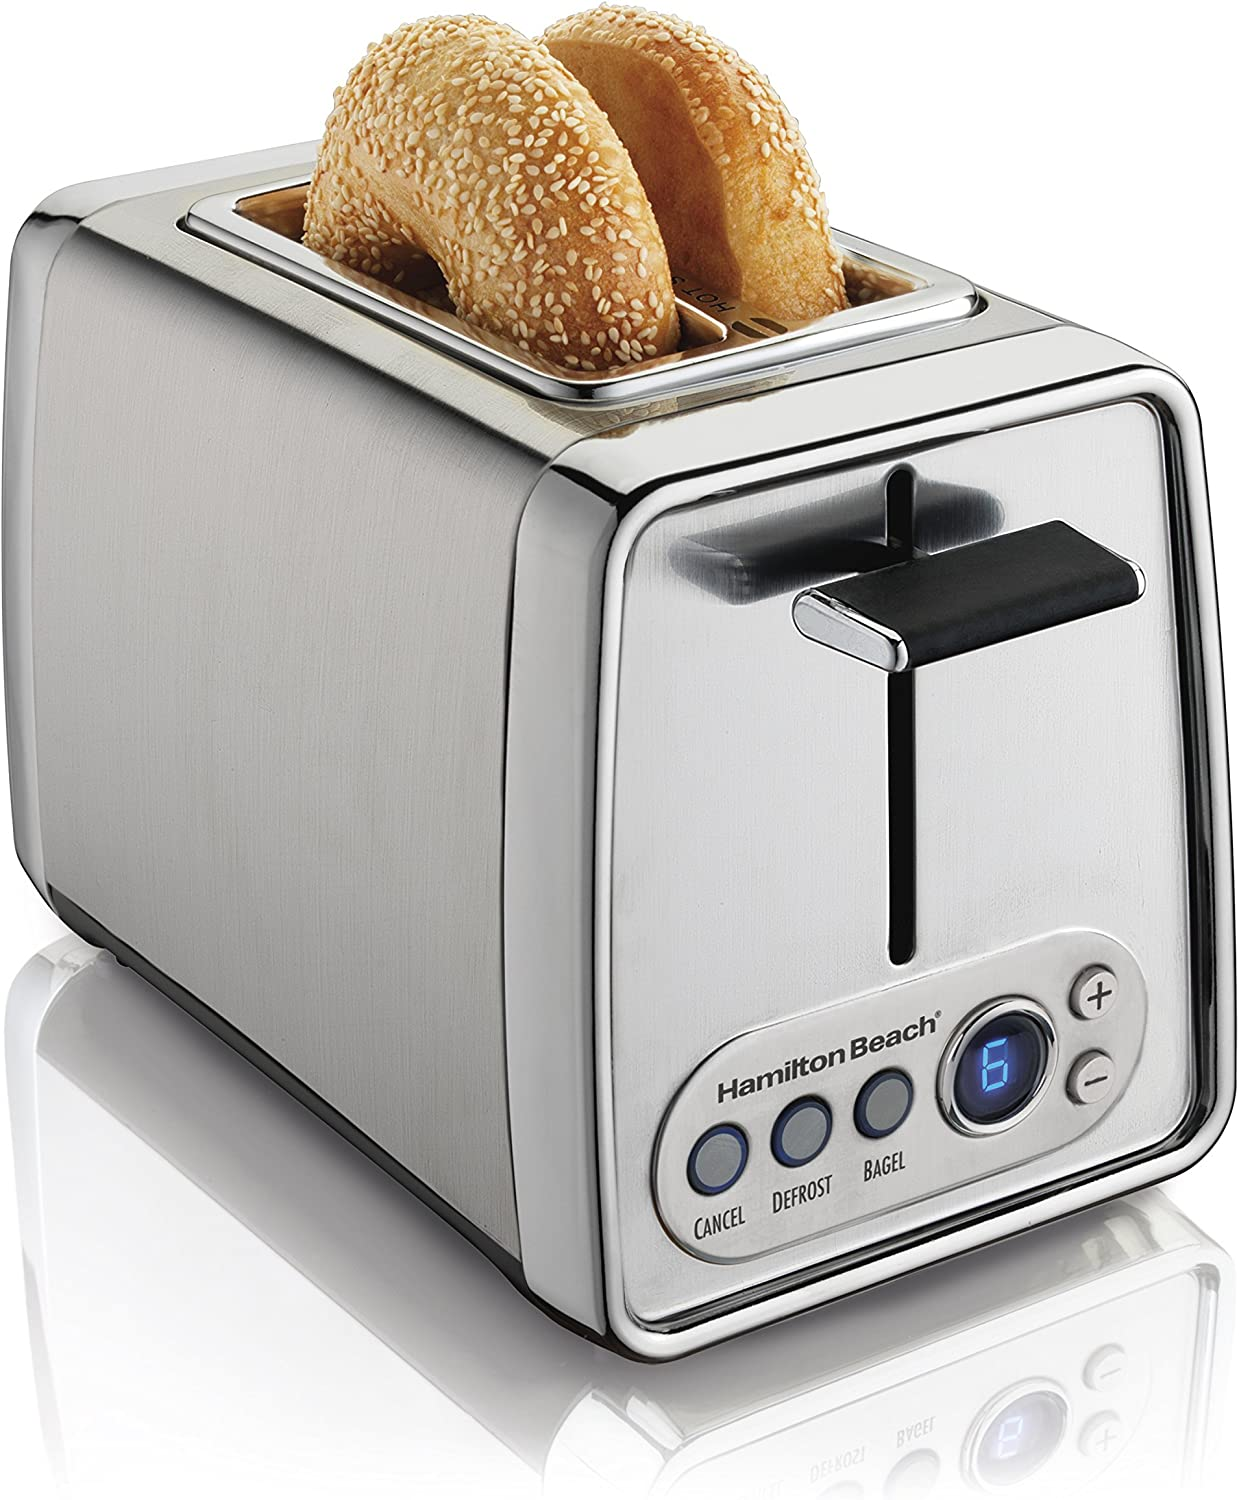 Hamilton Beach Modern Chrome Digital 2-Slice Extra-Wide Slot Toaster with Bagel and Defrost Settings, Shade Selector, Toast Boost, Slide-Out Crumb Tray, Auto-Shutoff and Cancel Button (22792)